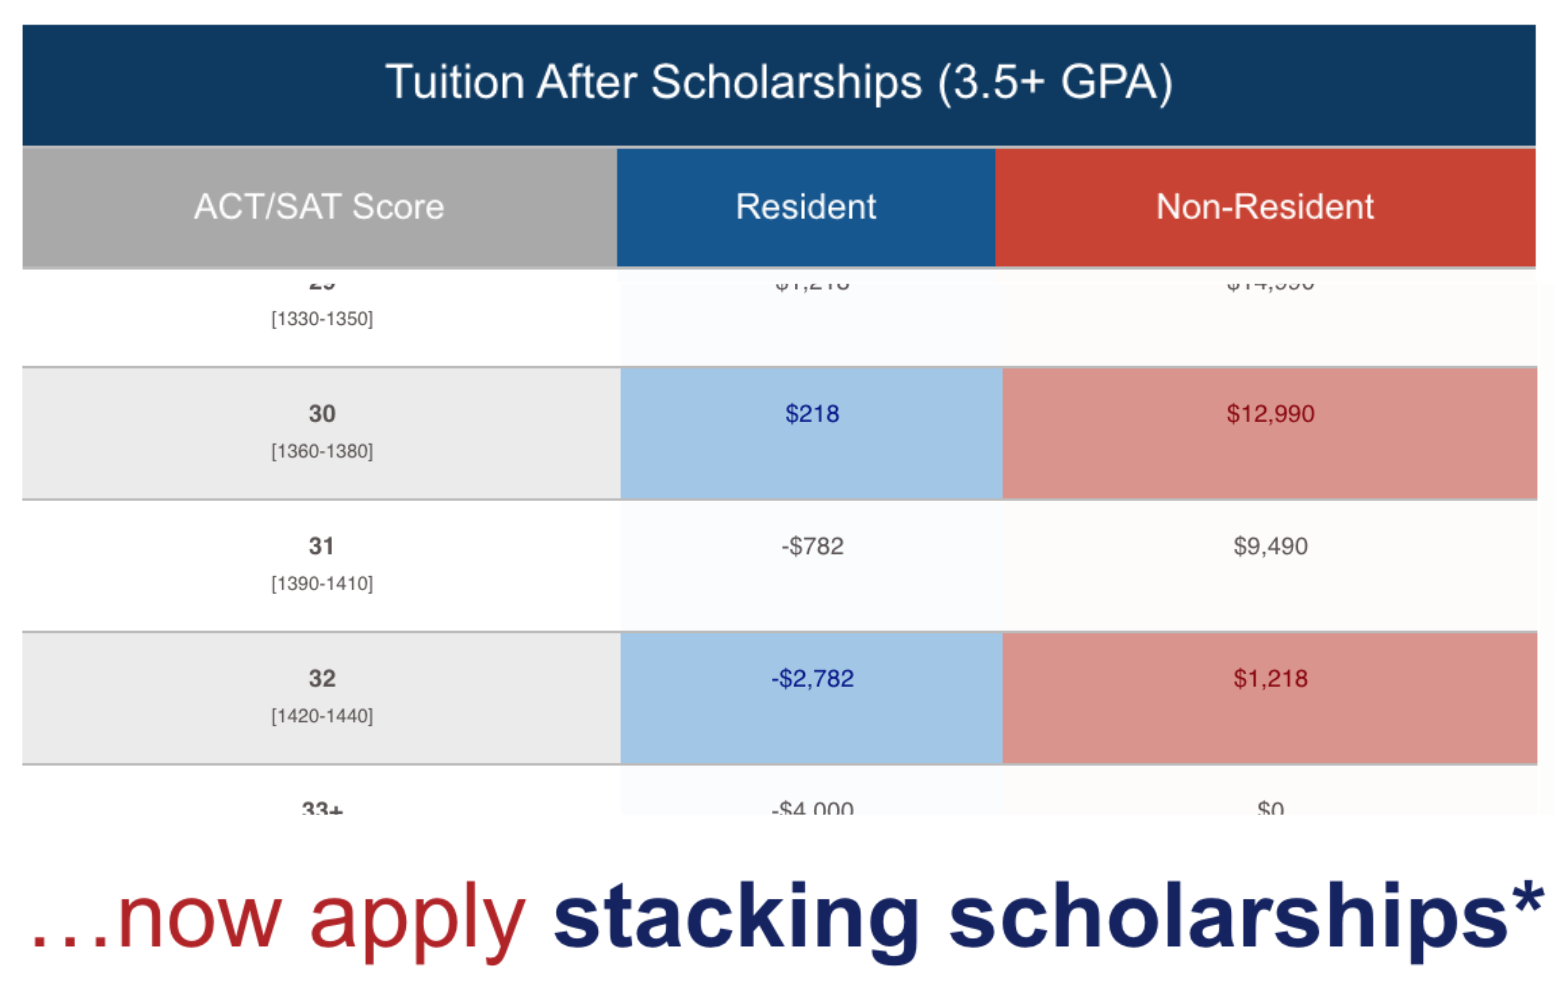 Academic Merit Scholarship Tuition Results Excerpt